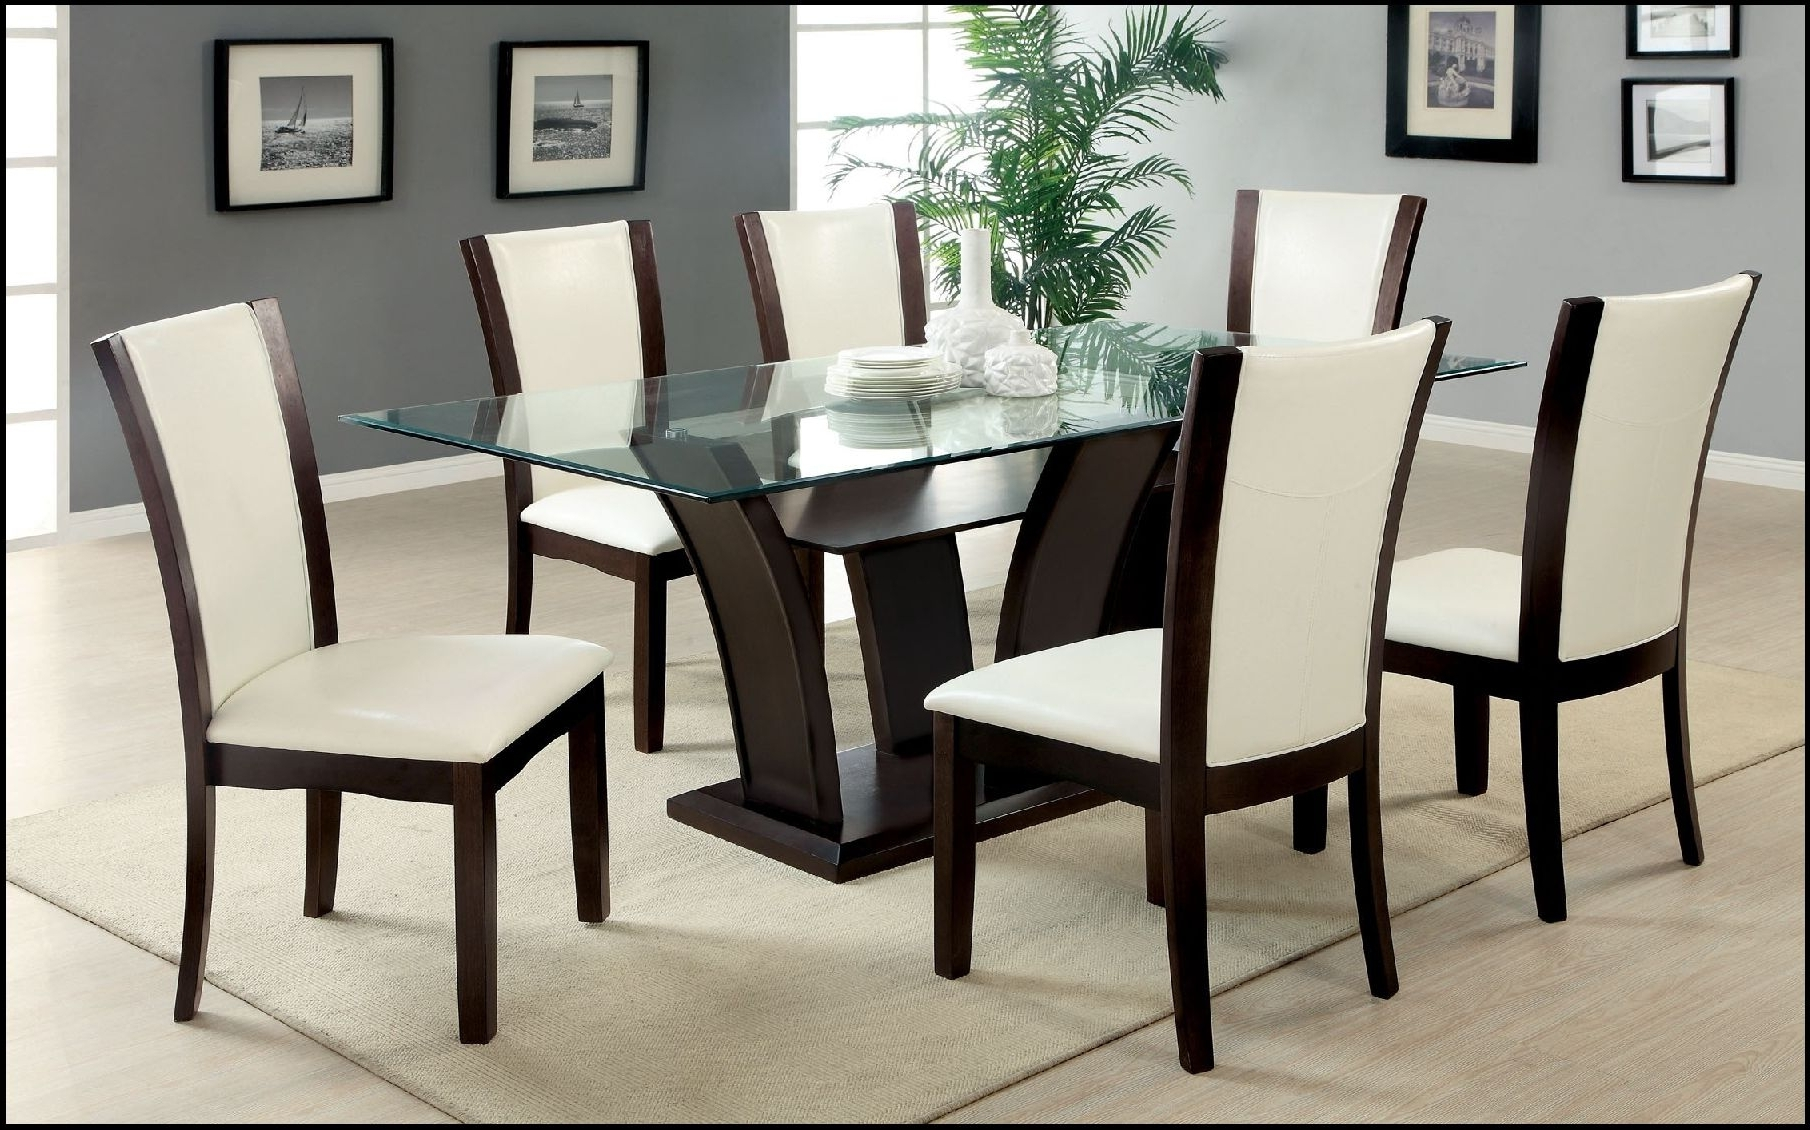 Widely Used 6 Seater Round Dining Tables Intended For Dining Table Set 6 Seater Round And Chairs Six Kitchen 4 Stunning (View 25 of 25)